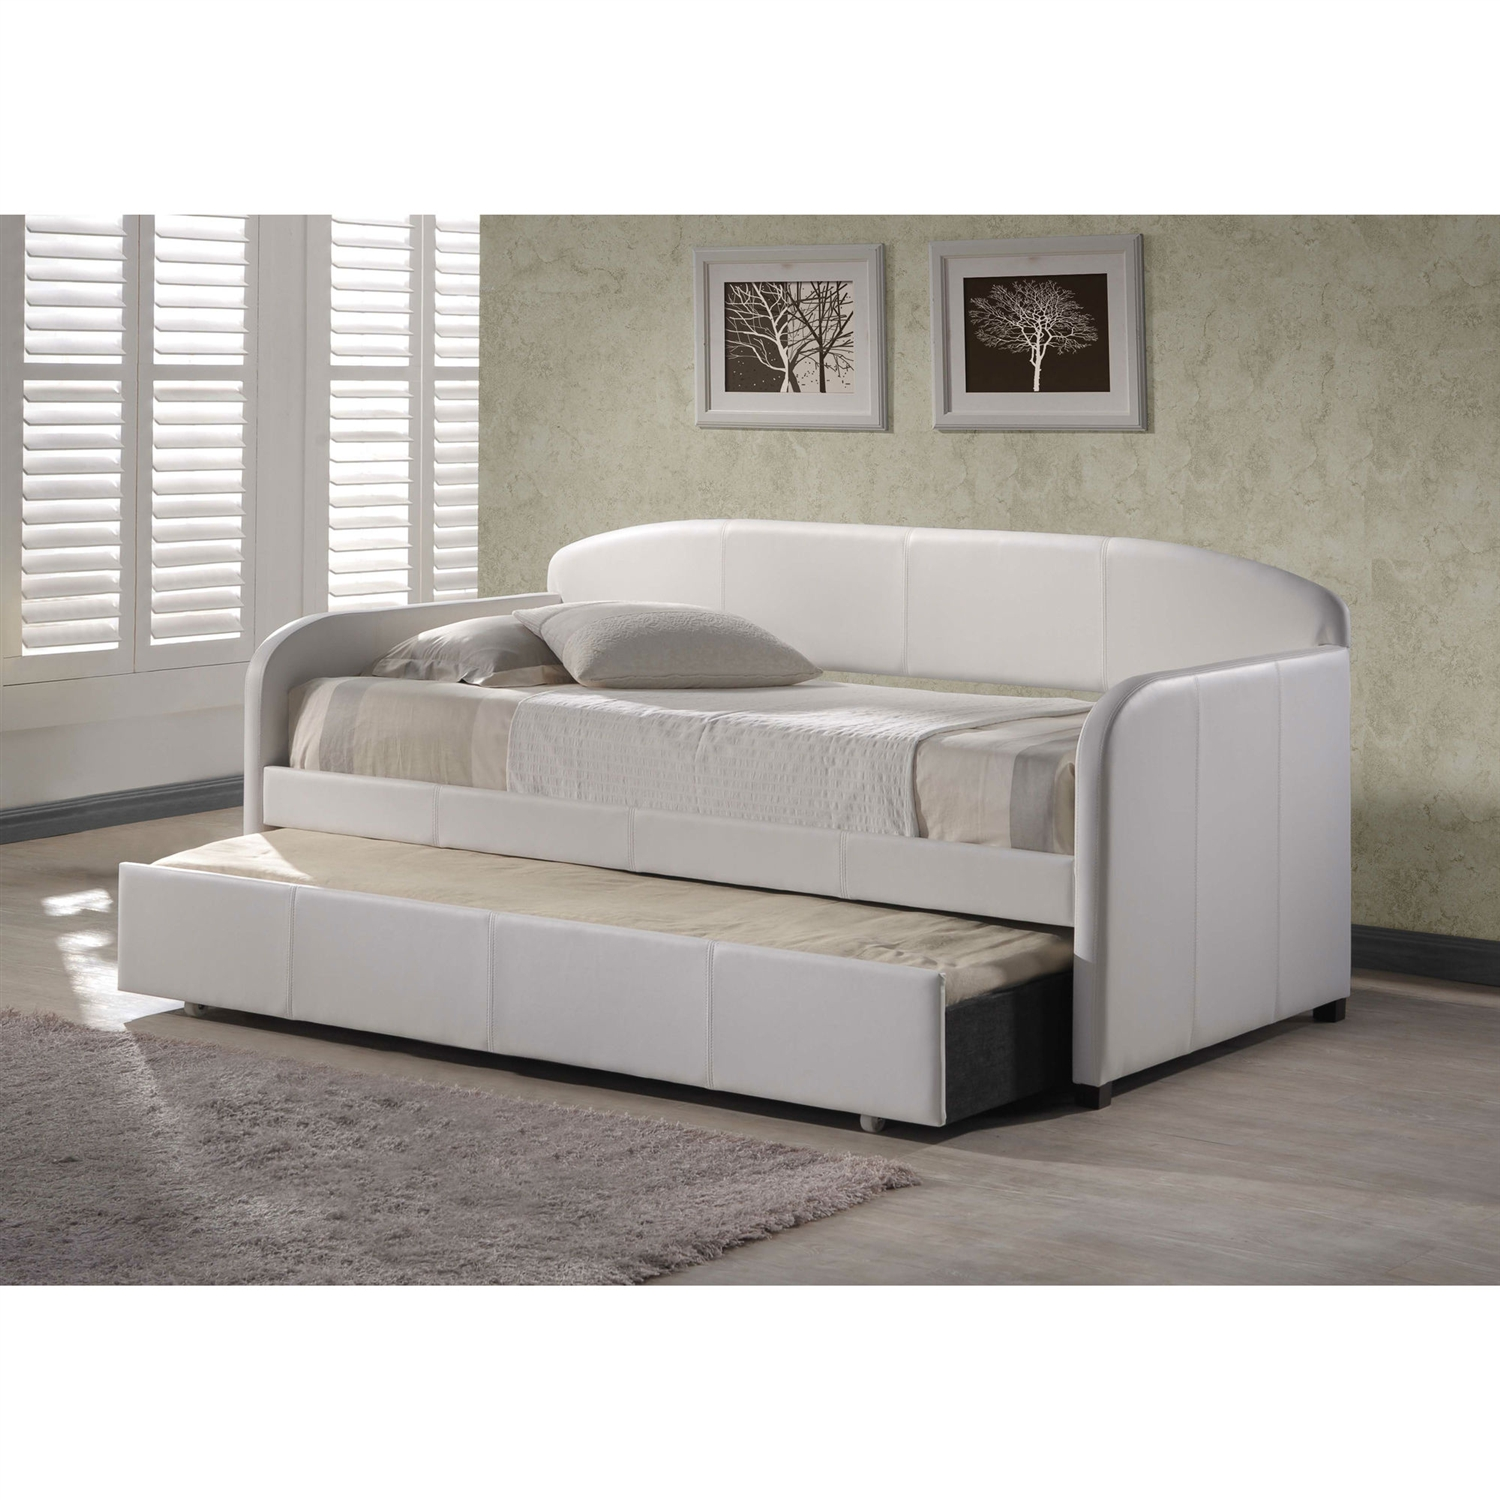 Twin Modern White Faux Leather Daybed With Roll Out Trundle Fastfurnishings Com